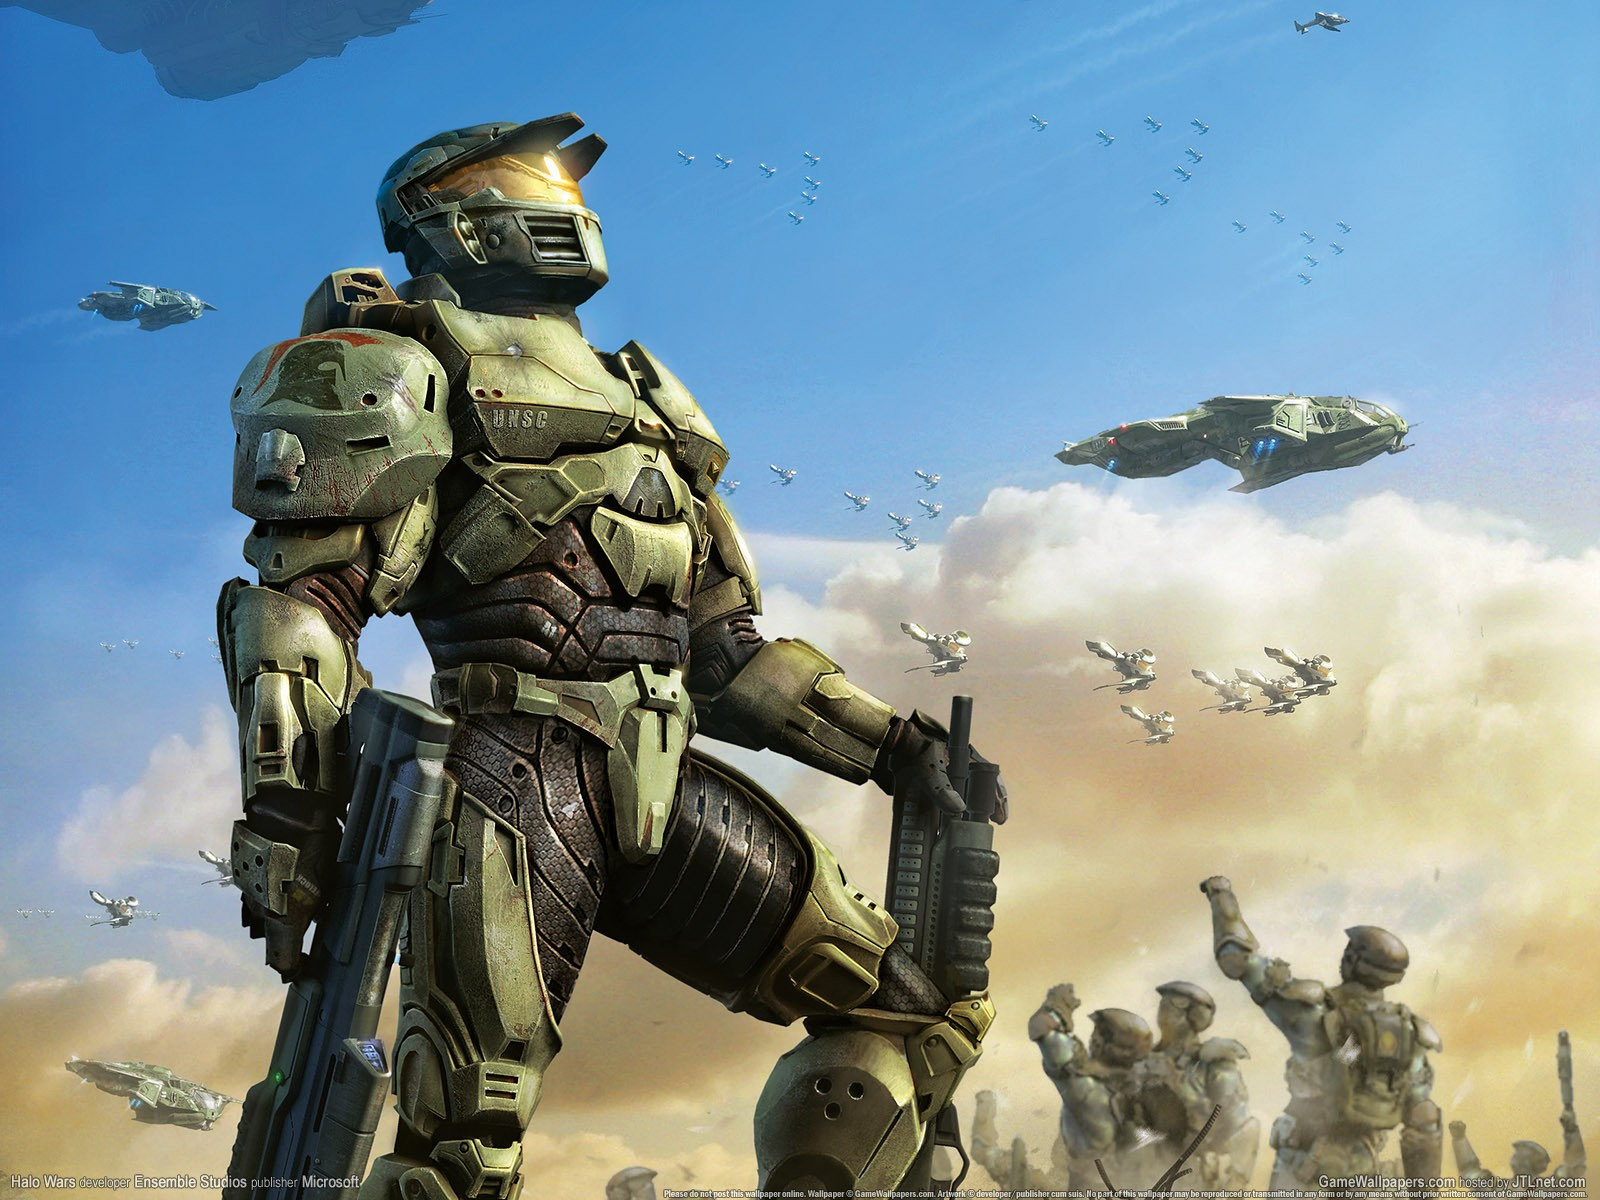 Halo wars wallpaper and background image 1600x1200 id 309135 wallpaper abyss - Wallpaper halo wars ...